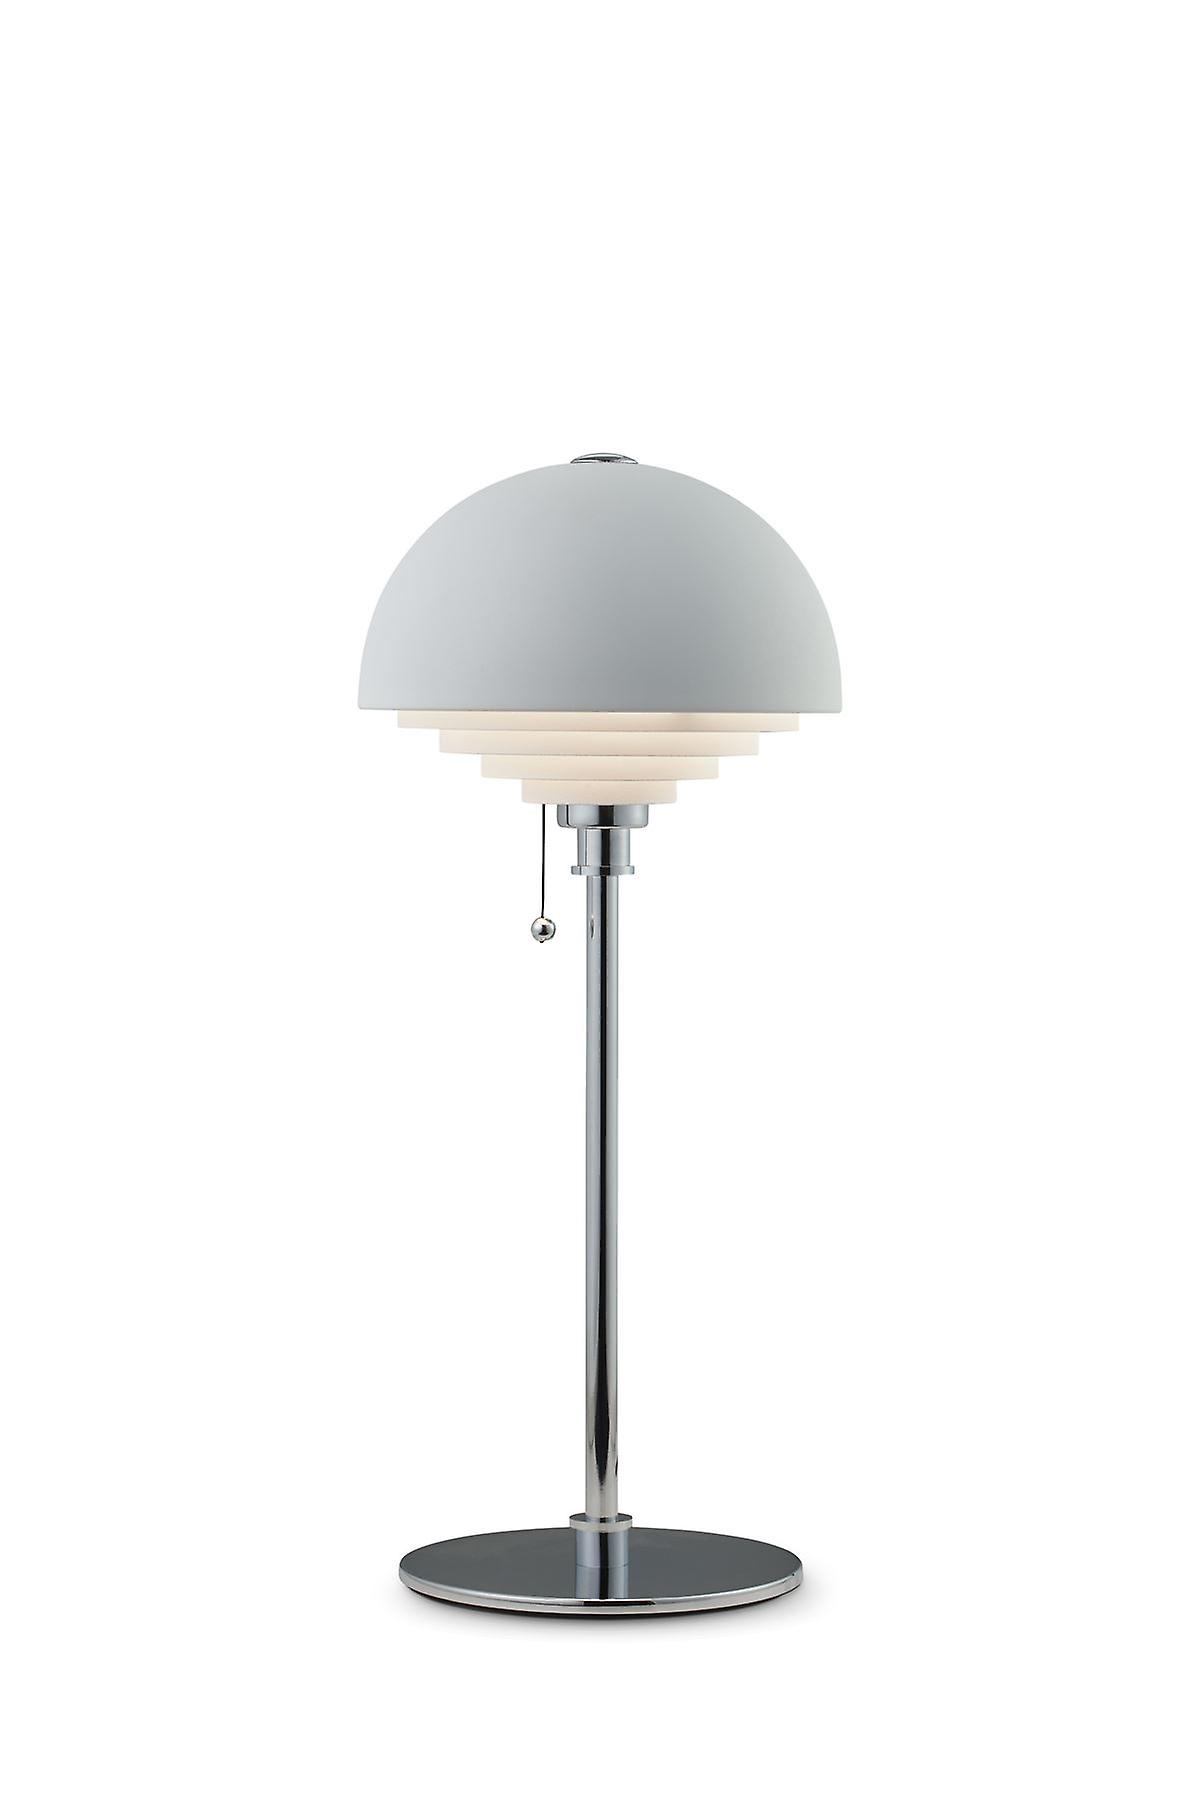 Herstal - Motown Table lampe blanc finition 13007200120